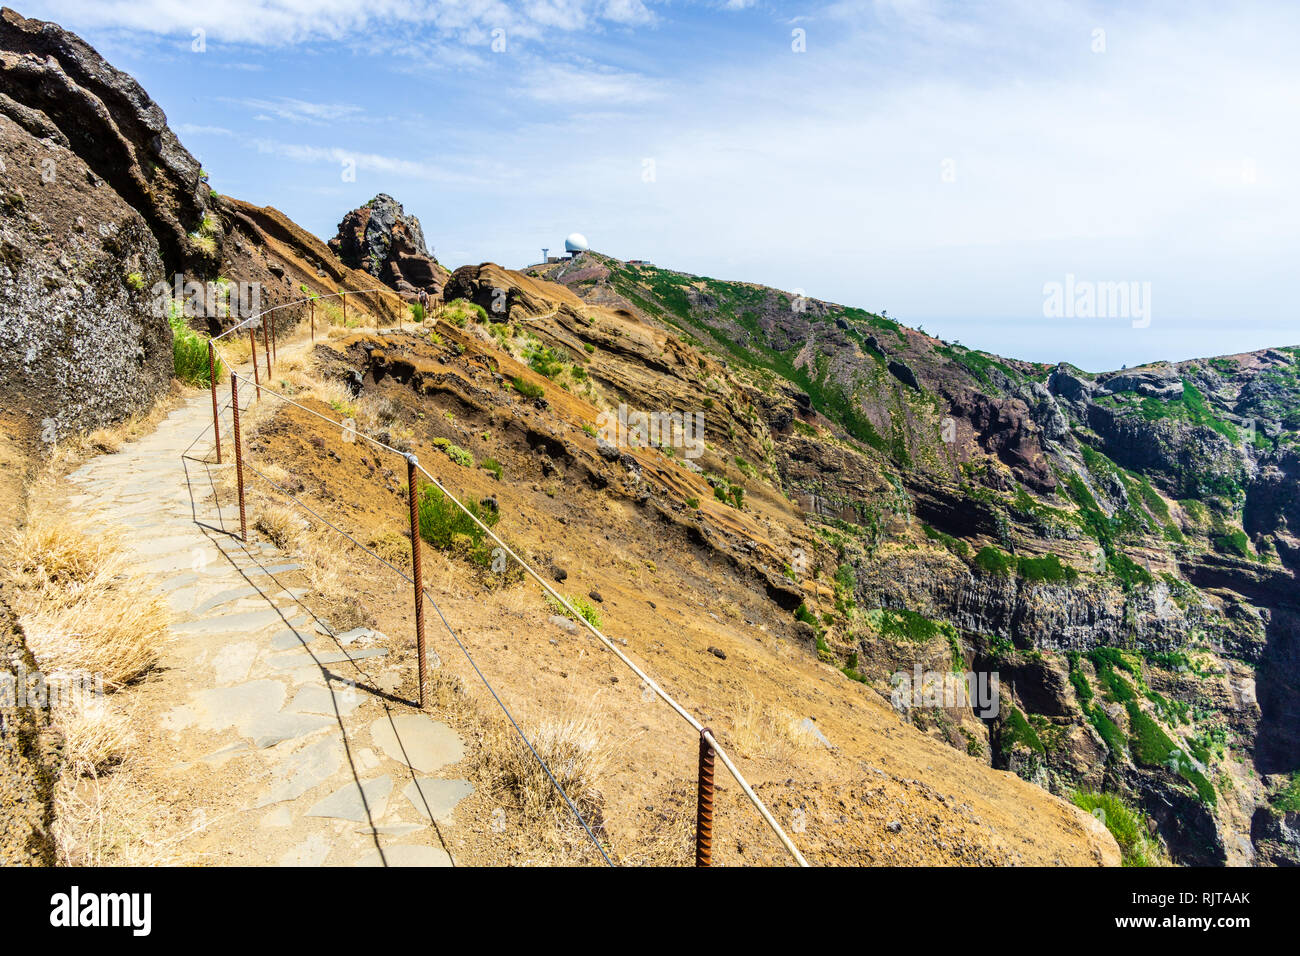 Hiking trail passage from mountain Pico Arieiro to Pico Ruivo, Madeira - pathway along abyss - Stock Image